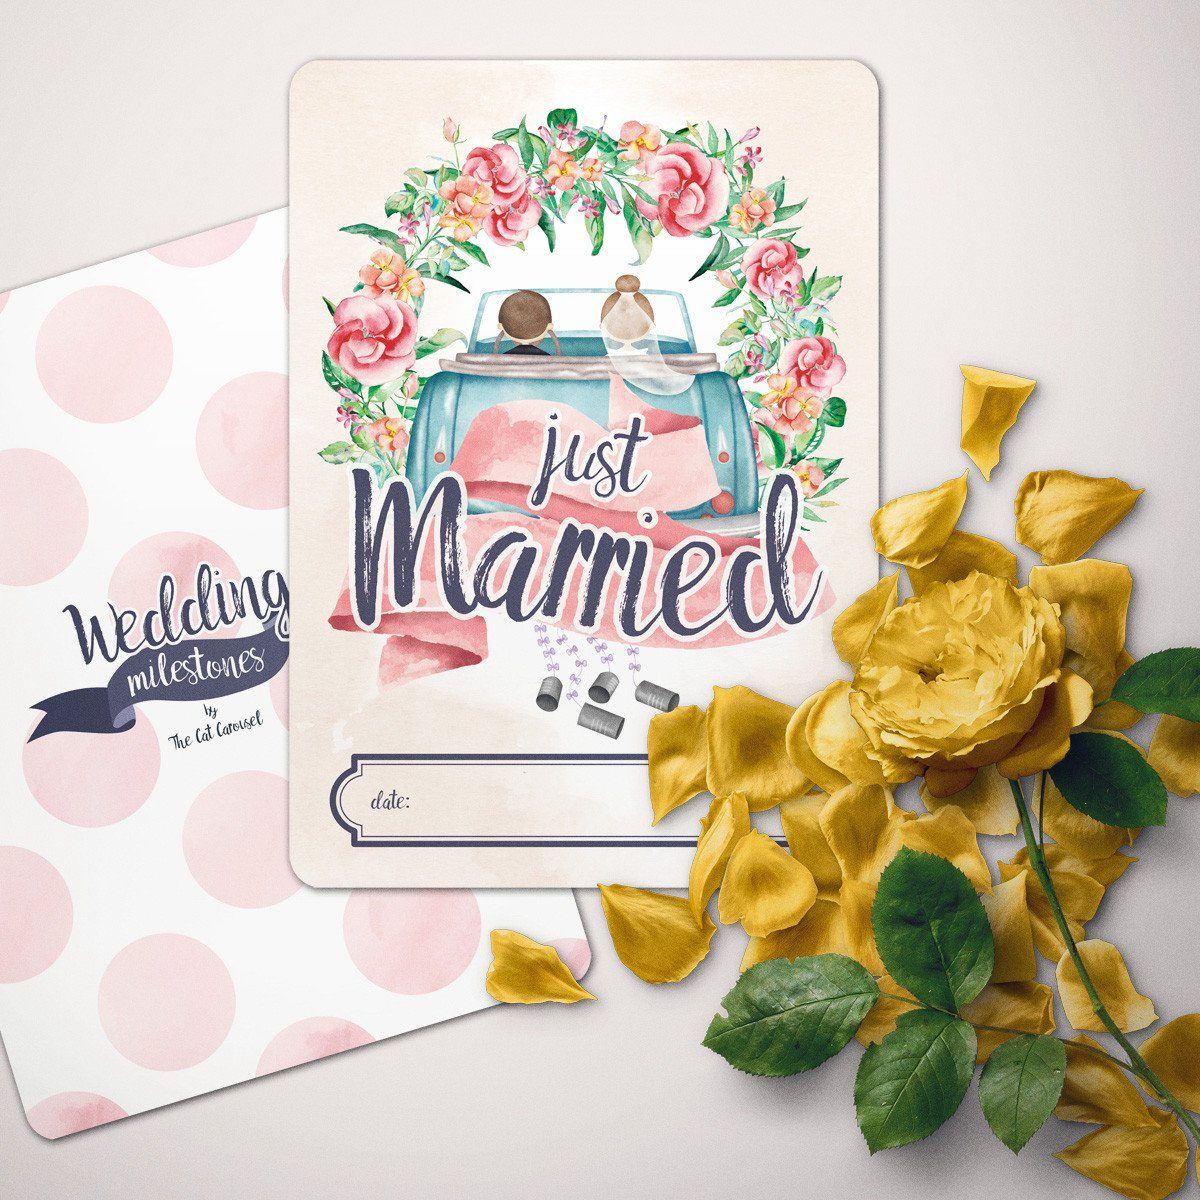 Wedding Milestone Cards Wedding Cards The Cat Carousel